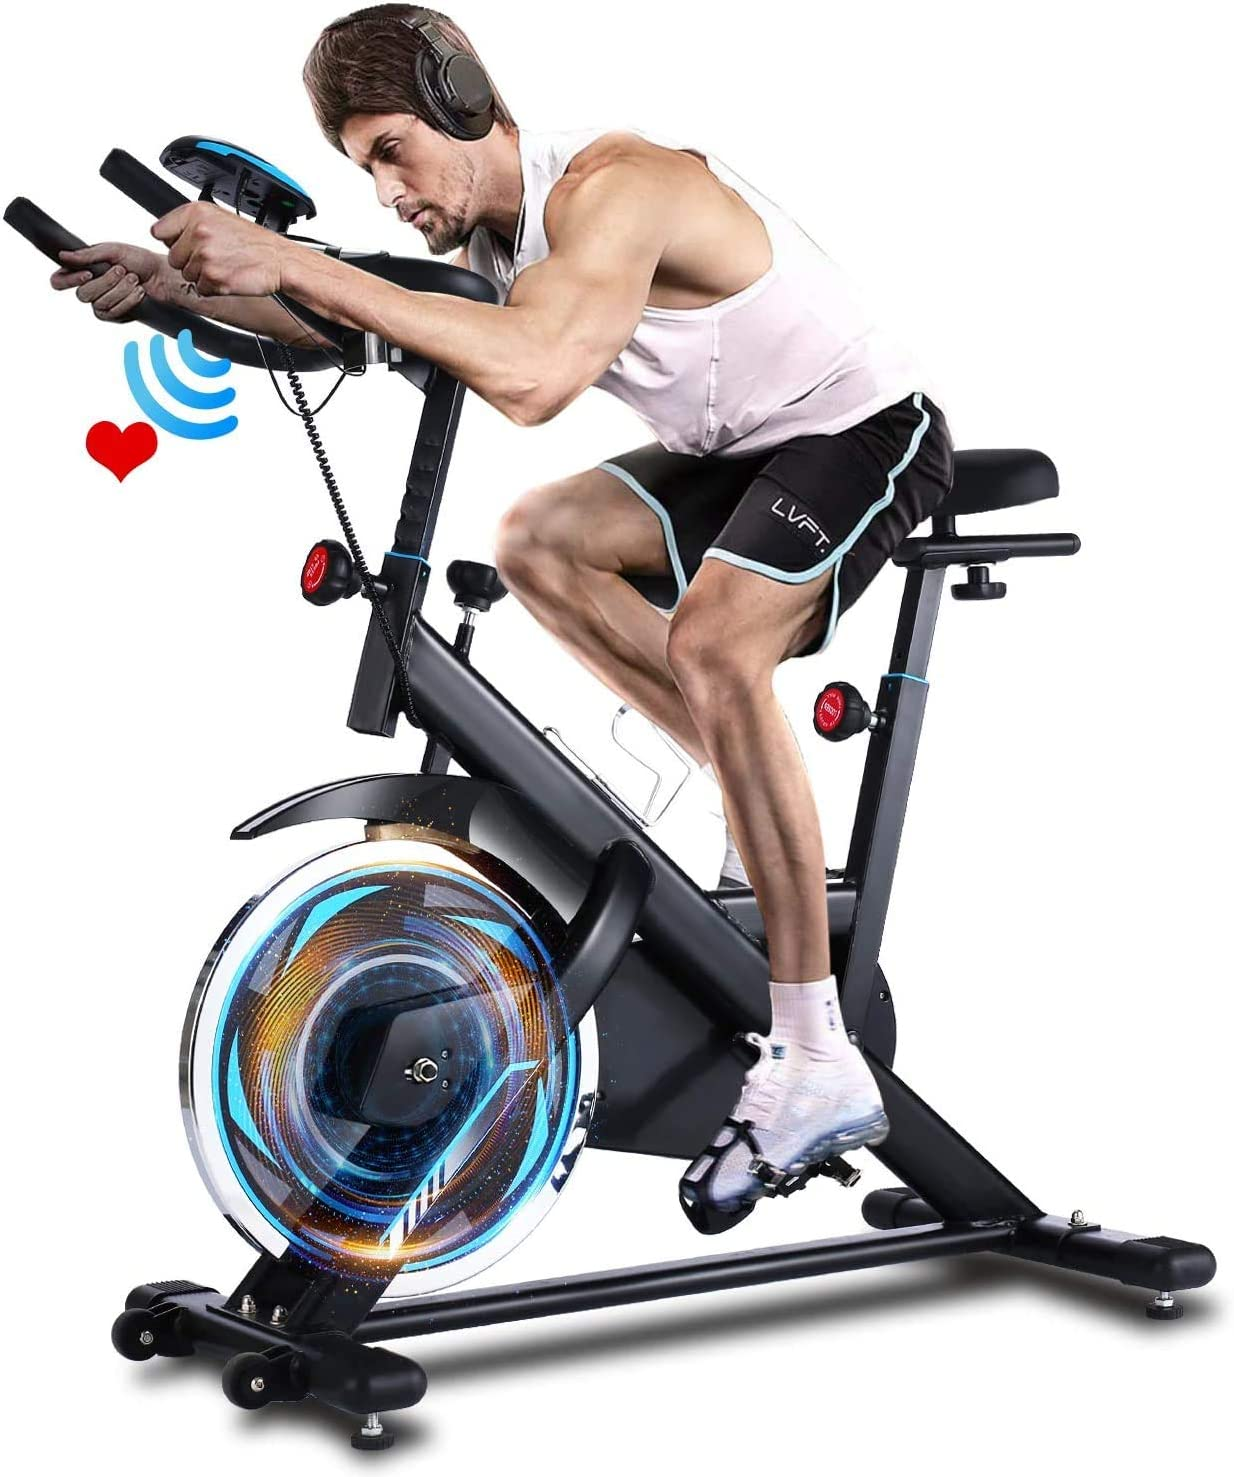 Details about  /Ancheer Vertical Climber Exercise Folding Climbing Machine Exercise Bike B h 69